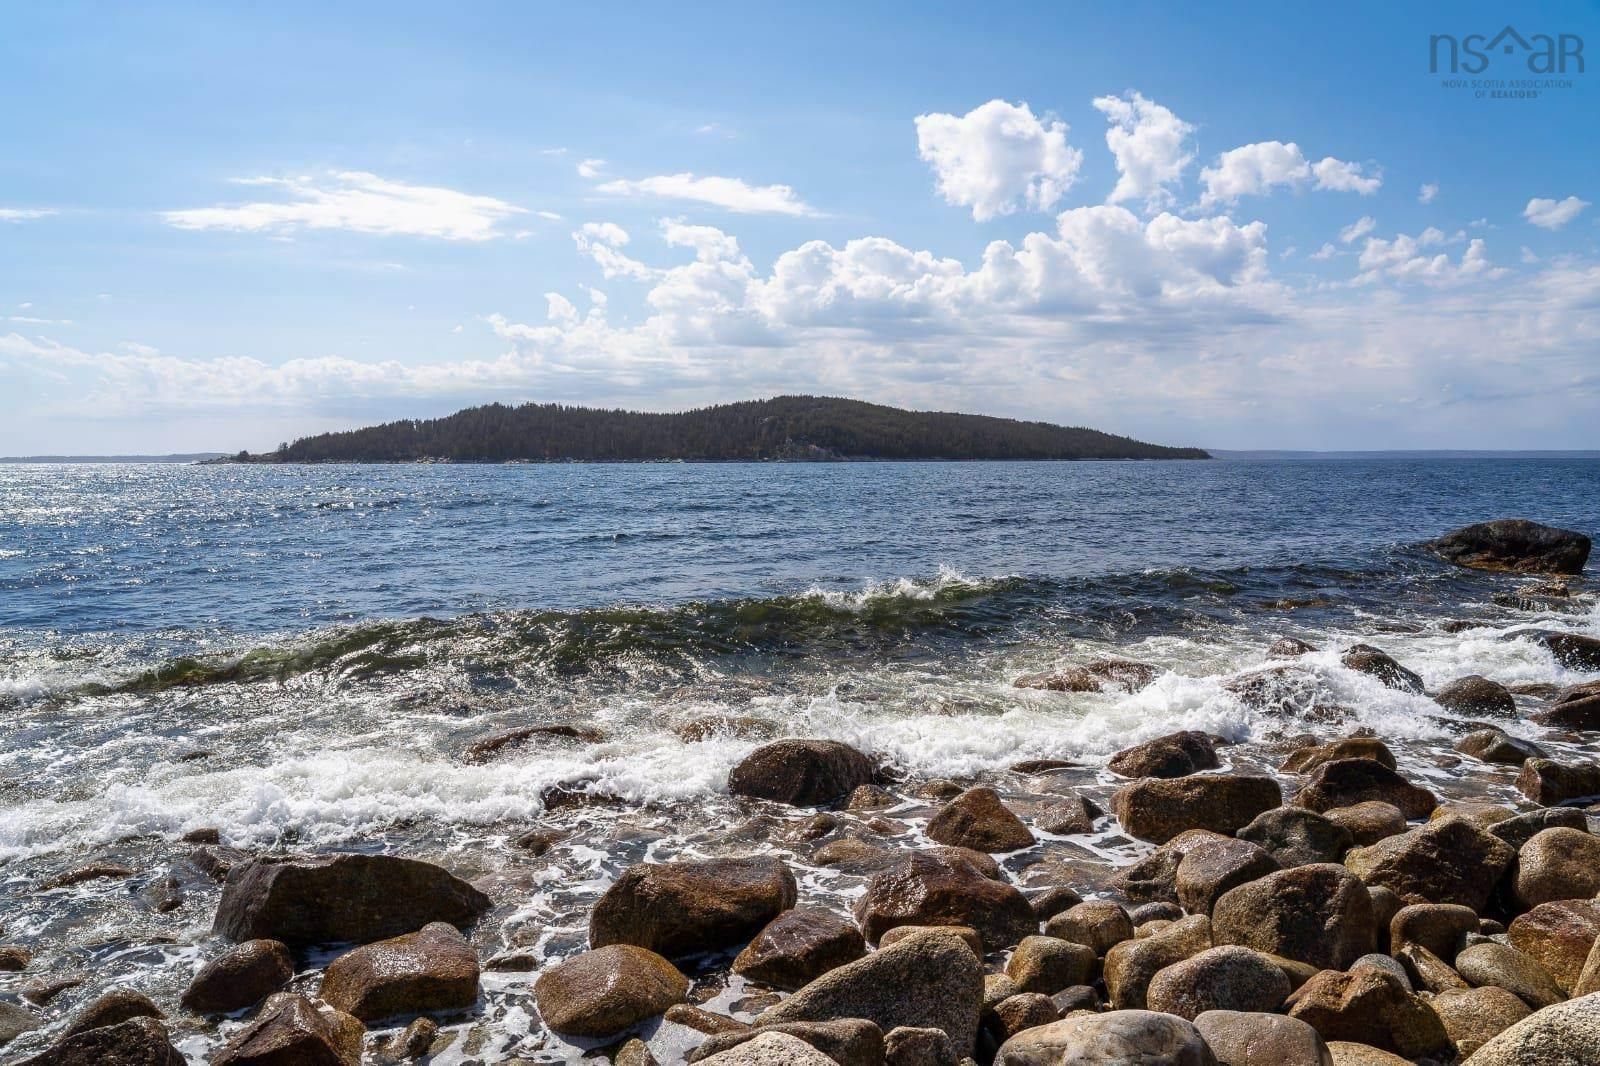 Main Photo: 9364 Peggy's Cove Road in Glen Margaret: 40-Timberlea, Prospect, St. Margaret`S Bay Vacant Land for sale (Halifax-Dartmouth)  : MLS®# 202125620